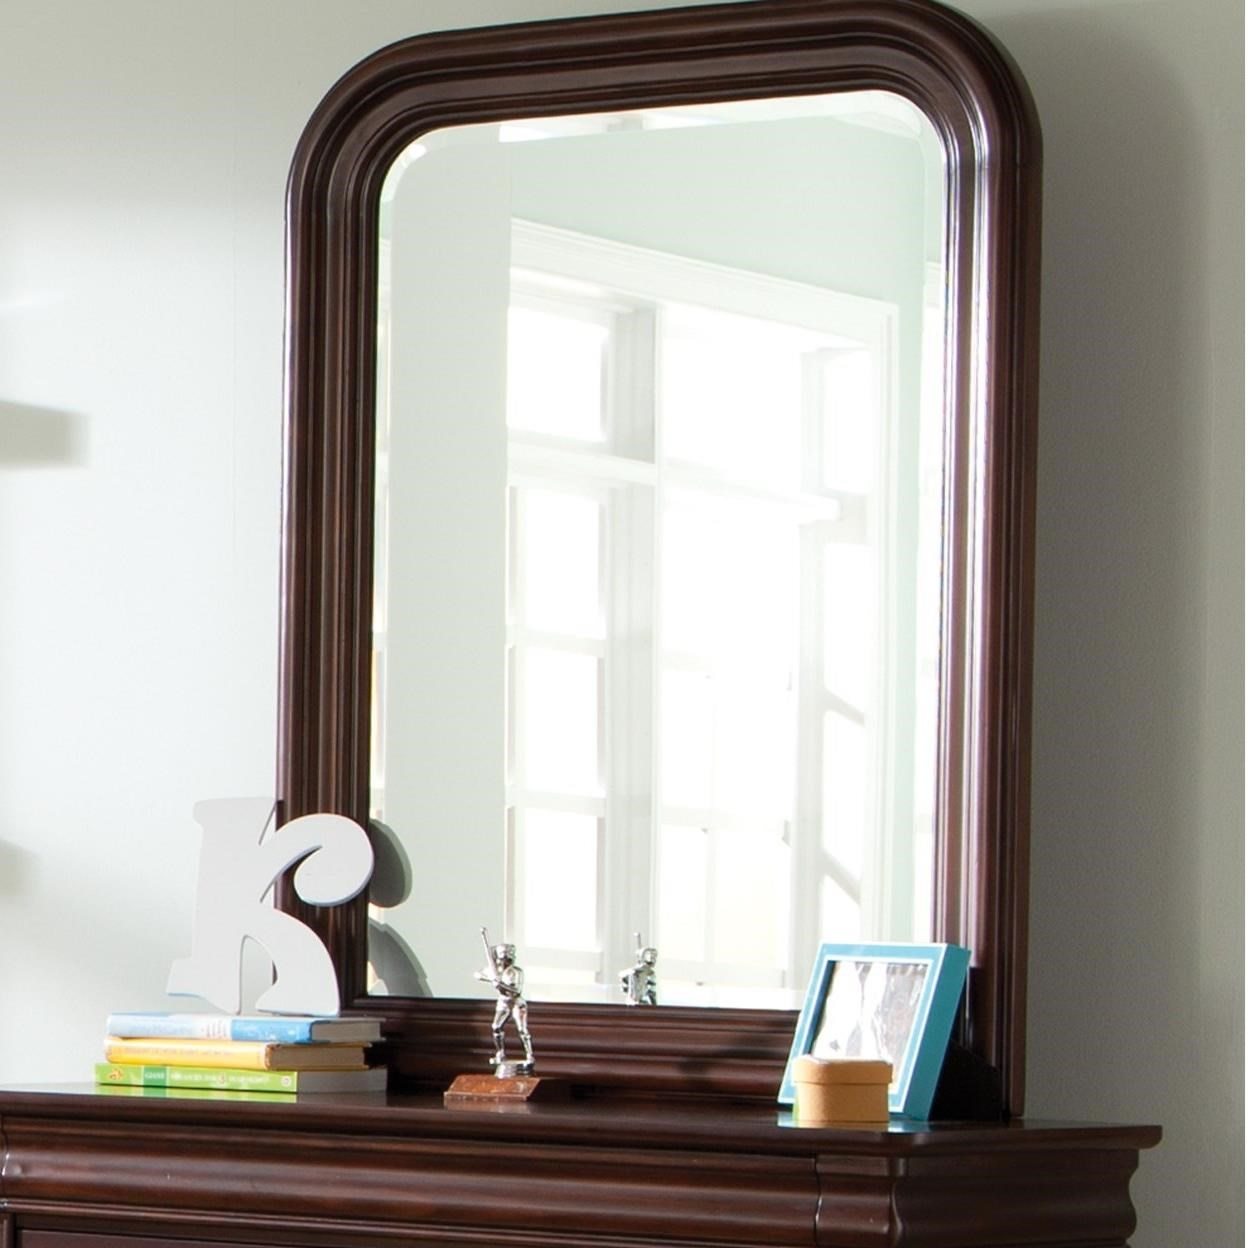 Liberty Furniture Carriage Court Mirror - Item Number: 709-BR50